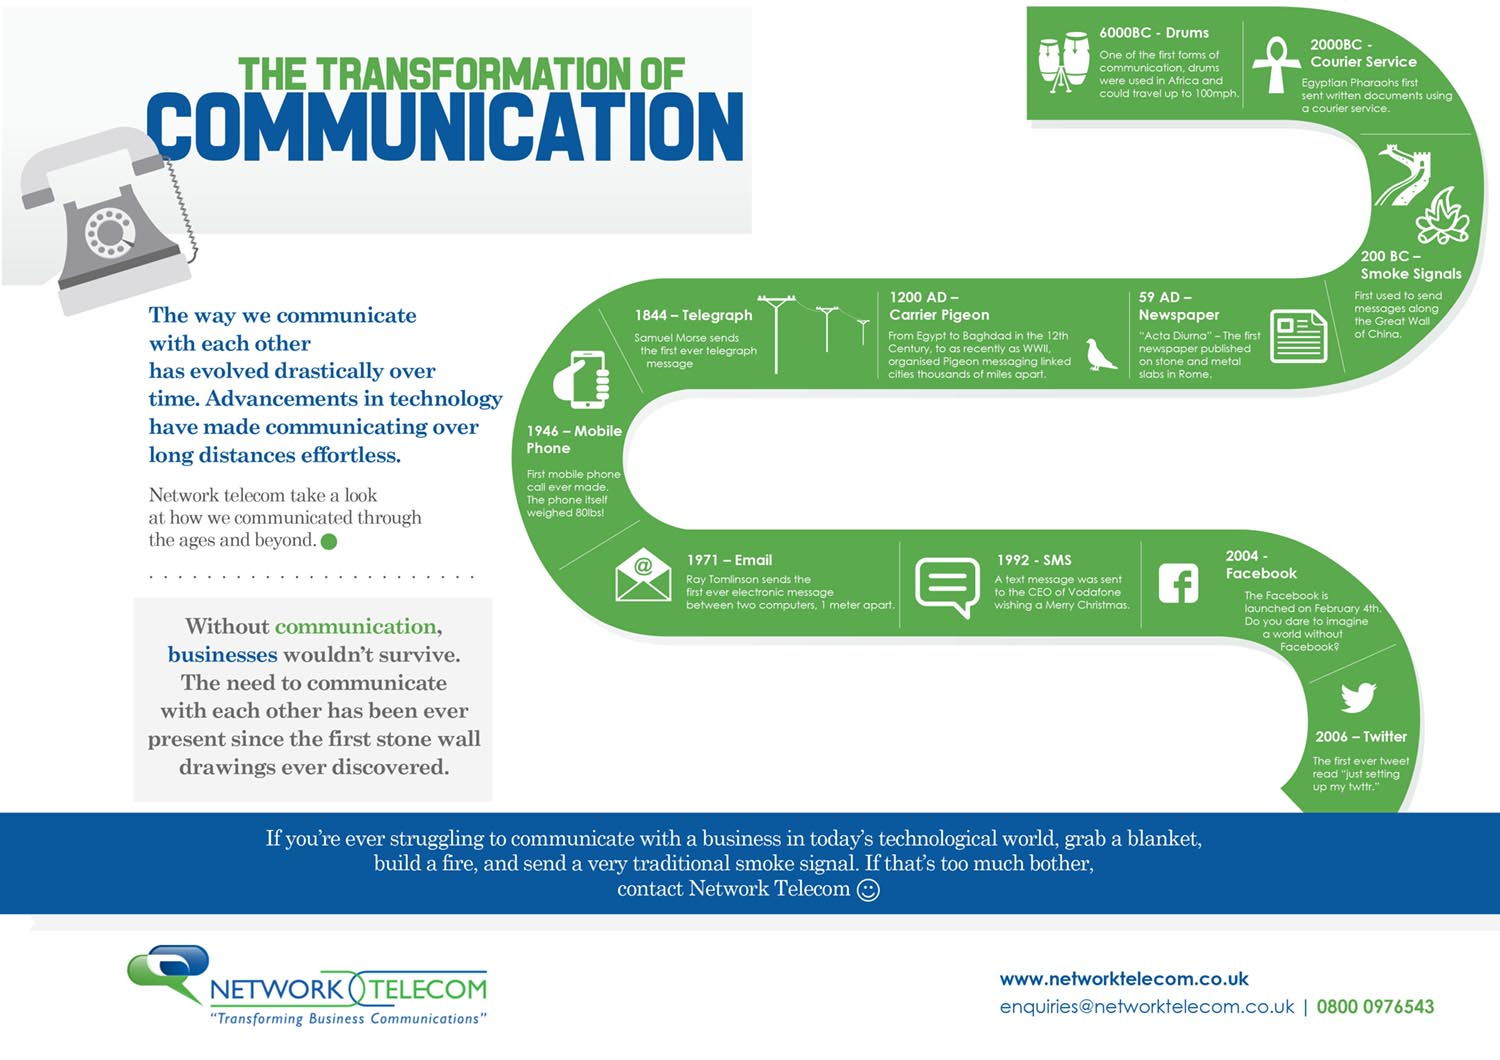 The Transformation of Communication